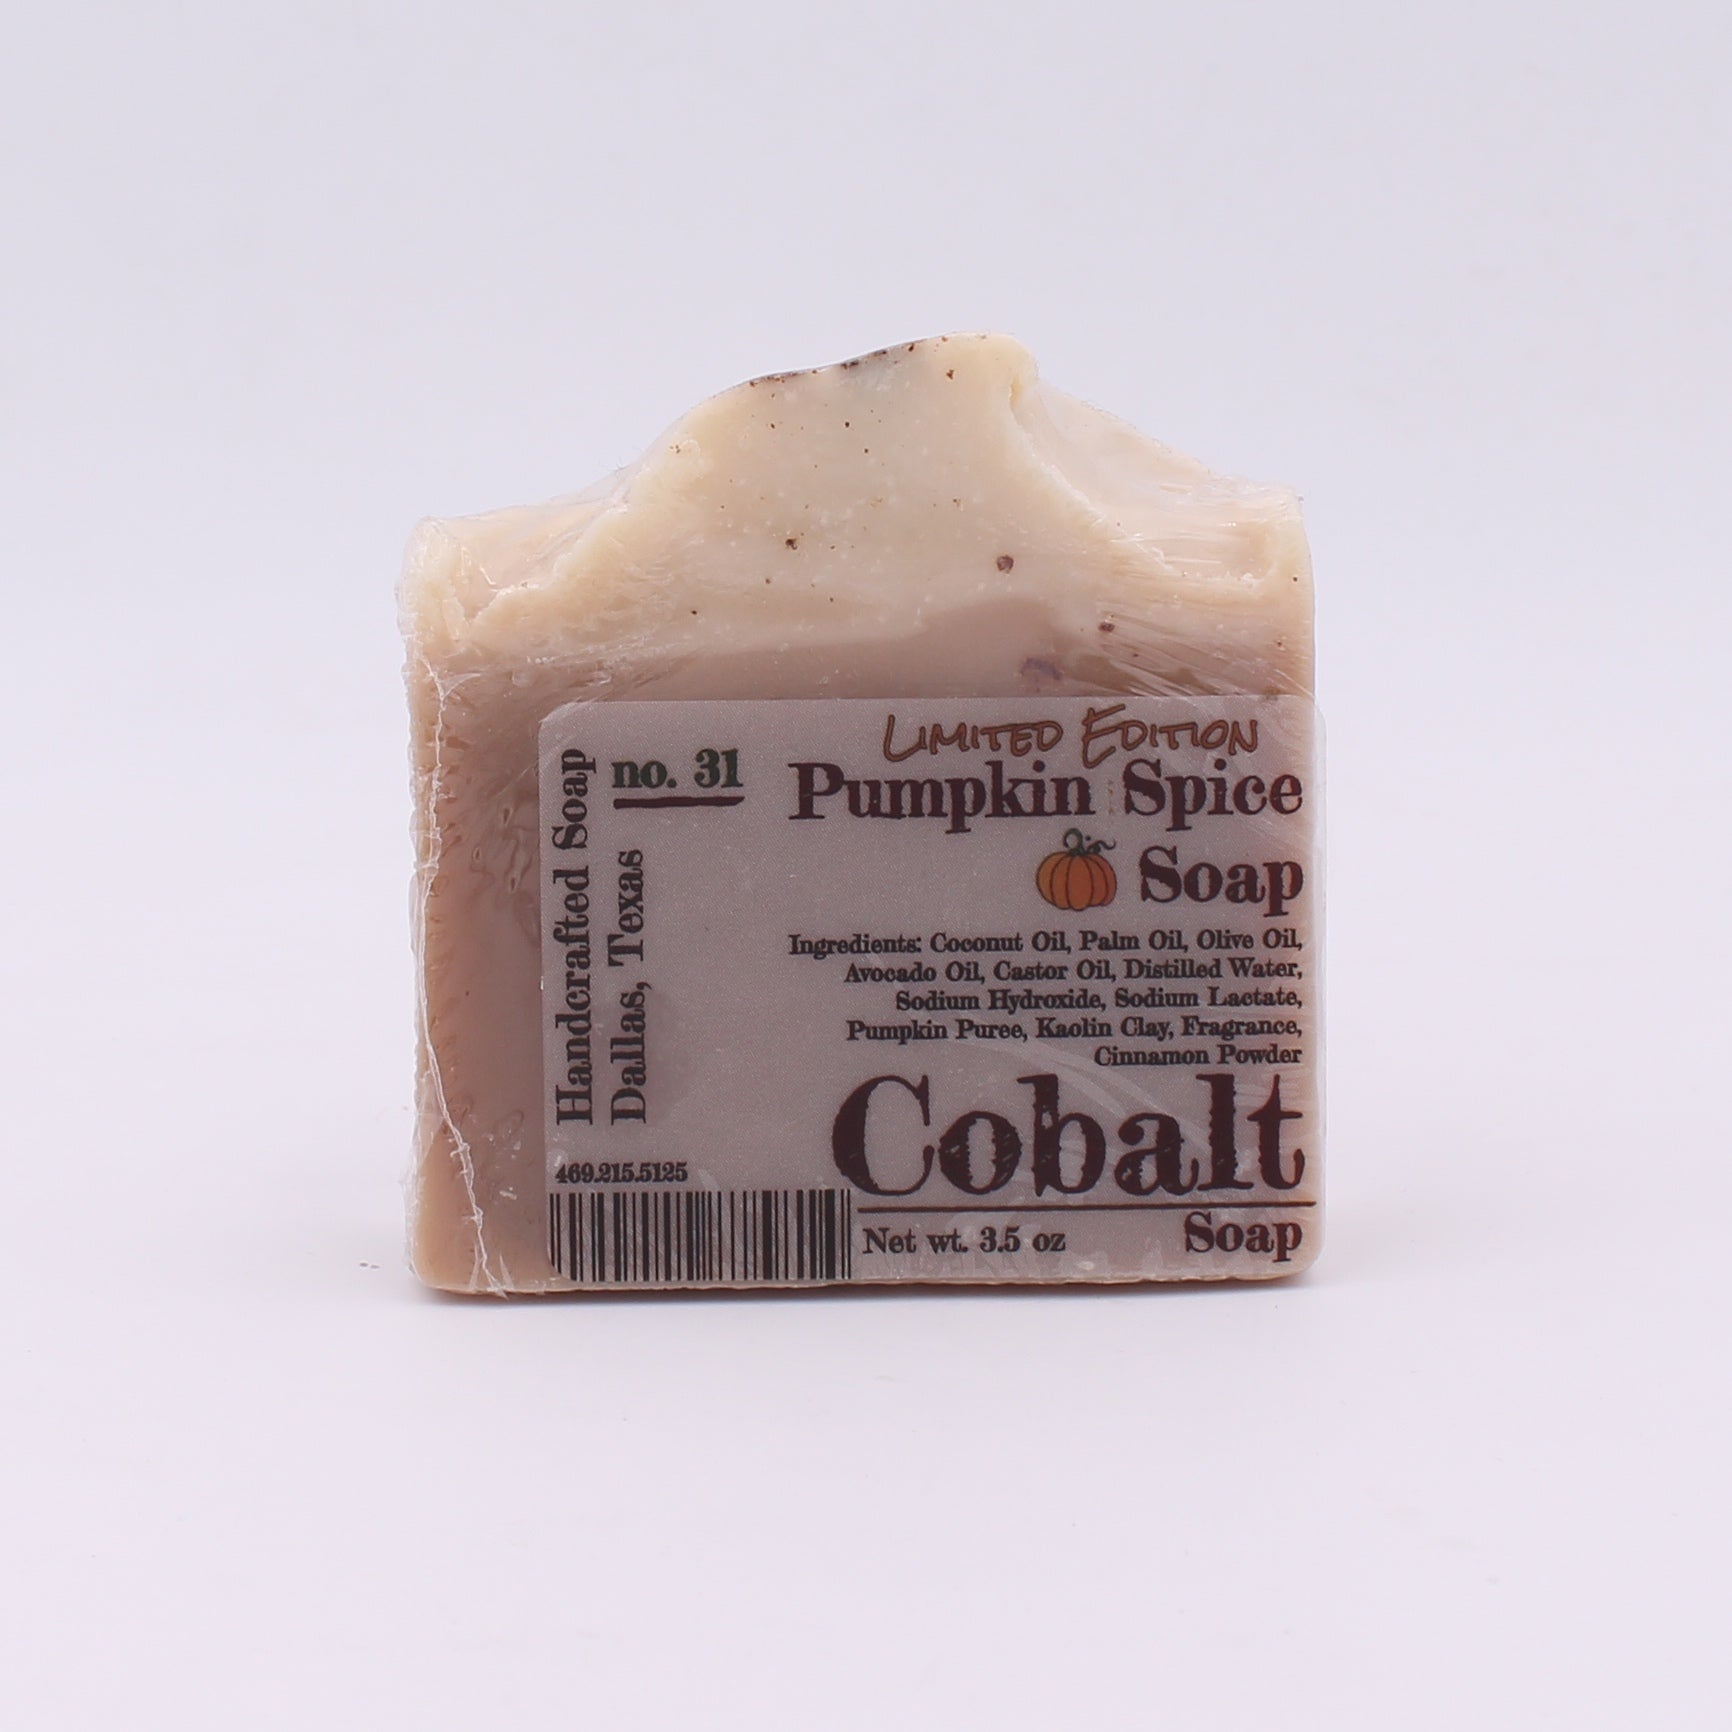 Cobalt Soap no. 31 - Pumpkin Spice